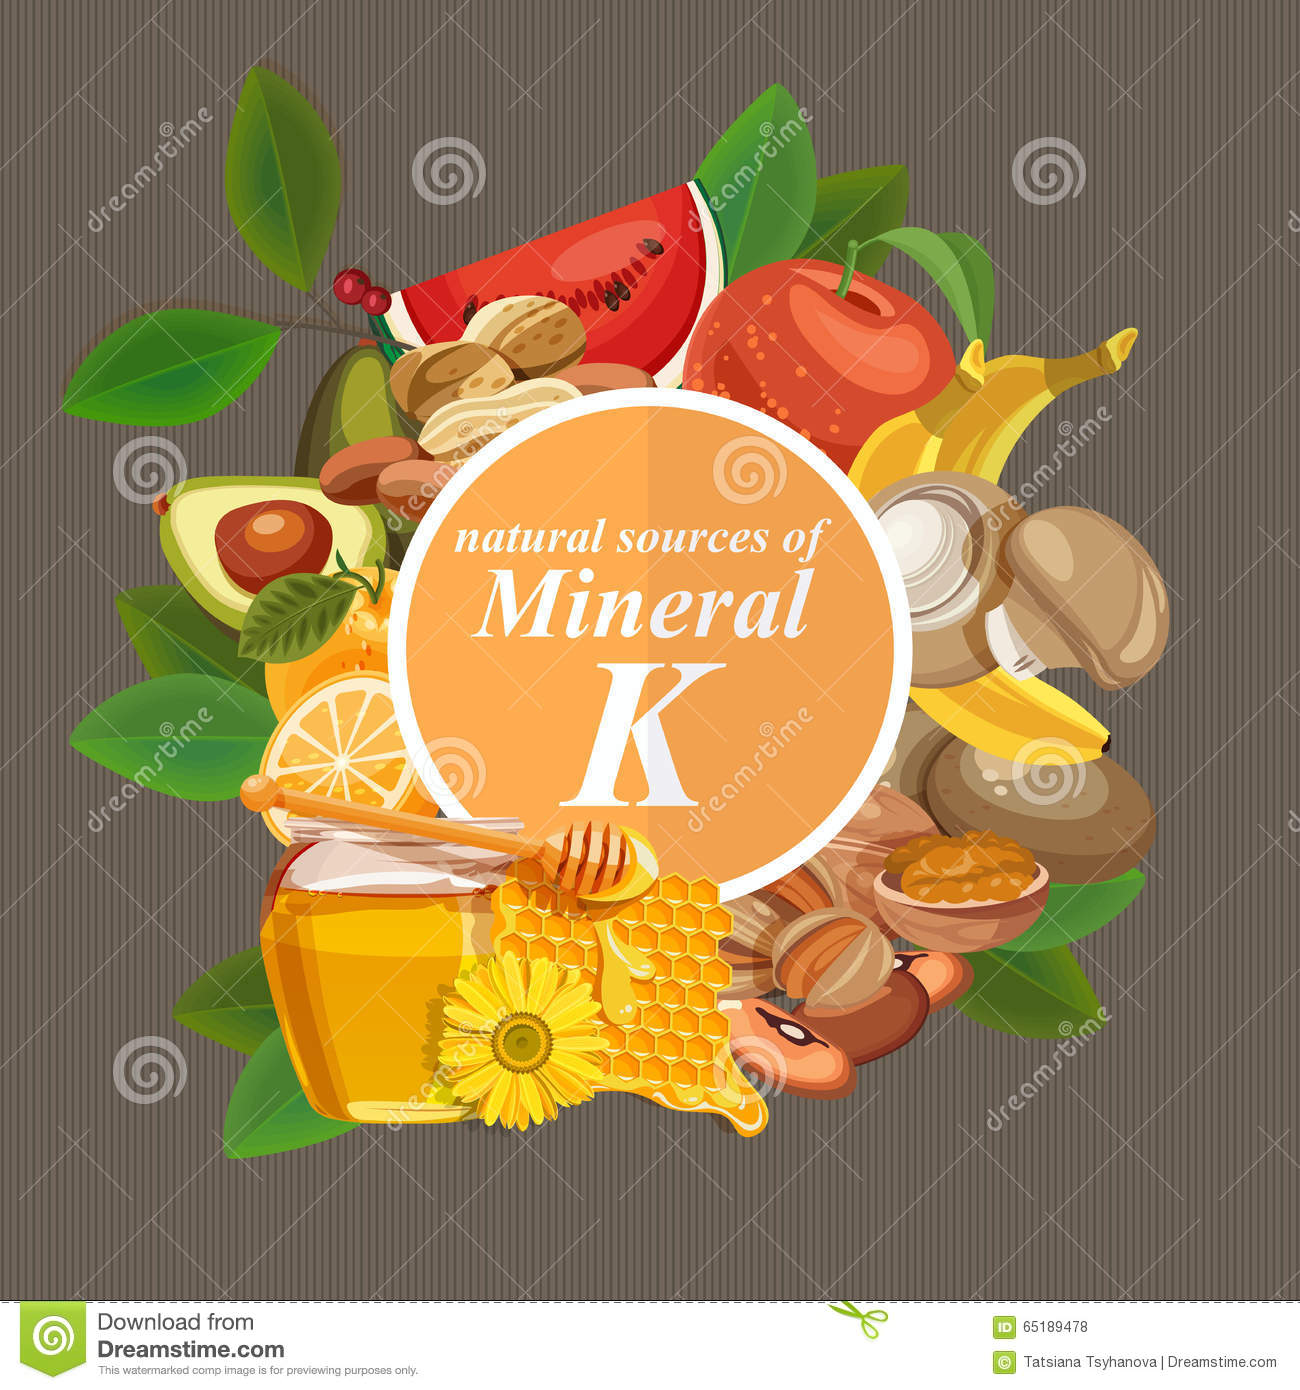 Groups of healthy fruit, vegetables, meat, fish and dairy products containing specific vitamins. Potassium. Minerals.